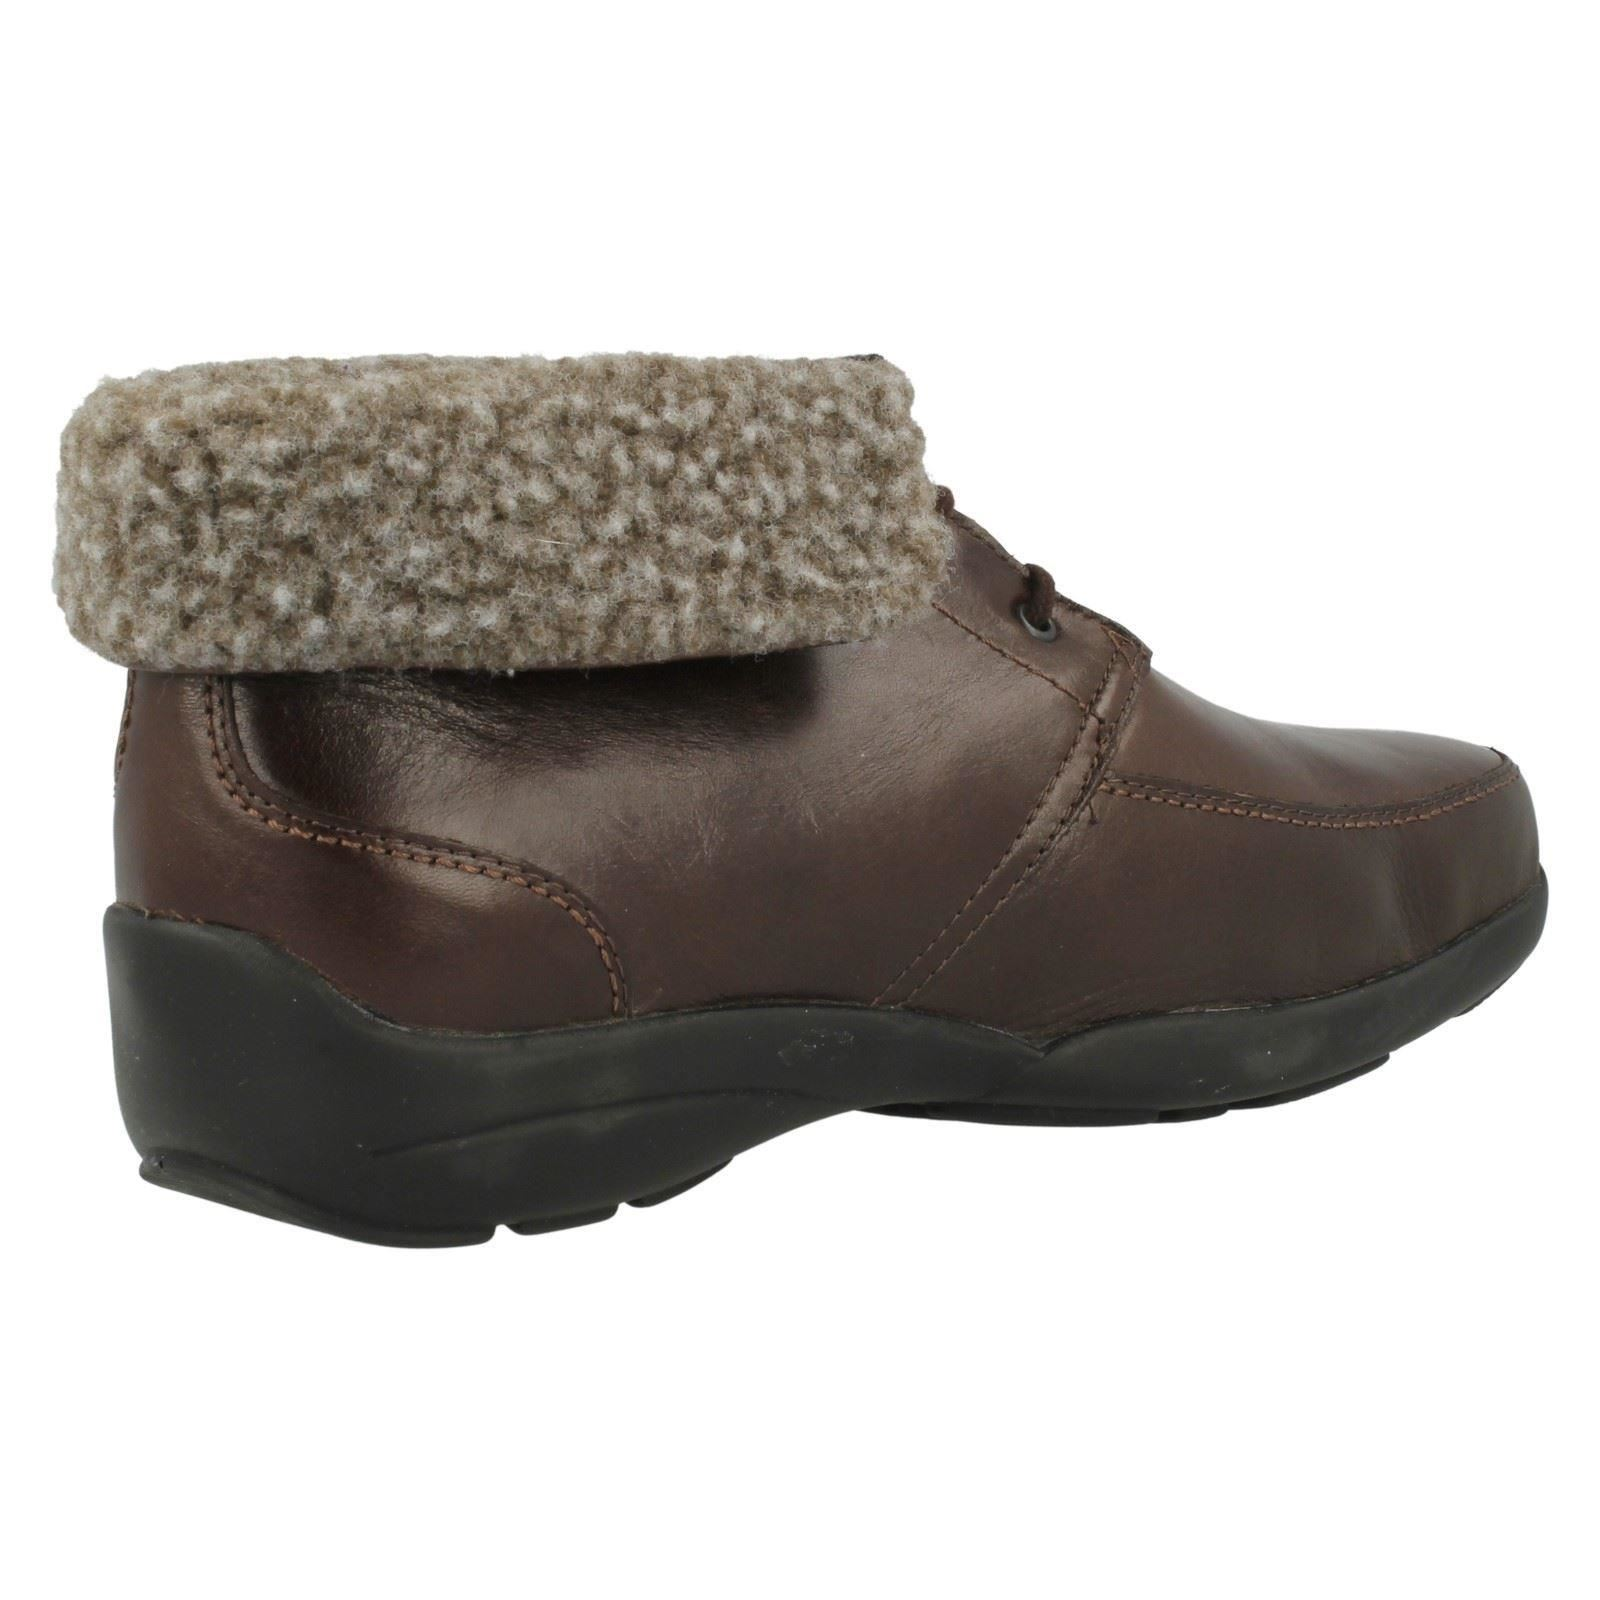 Style Lace Ladies Boot Bell B Vwnny8m0o Ankle Up ~ Brown Easy The N WEIHY9D2